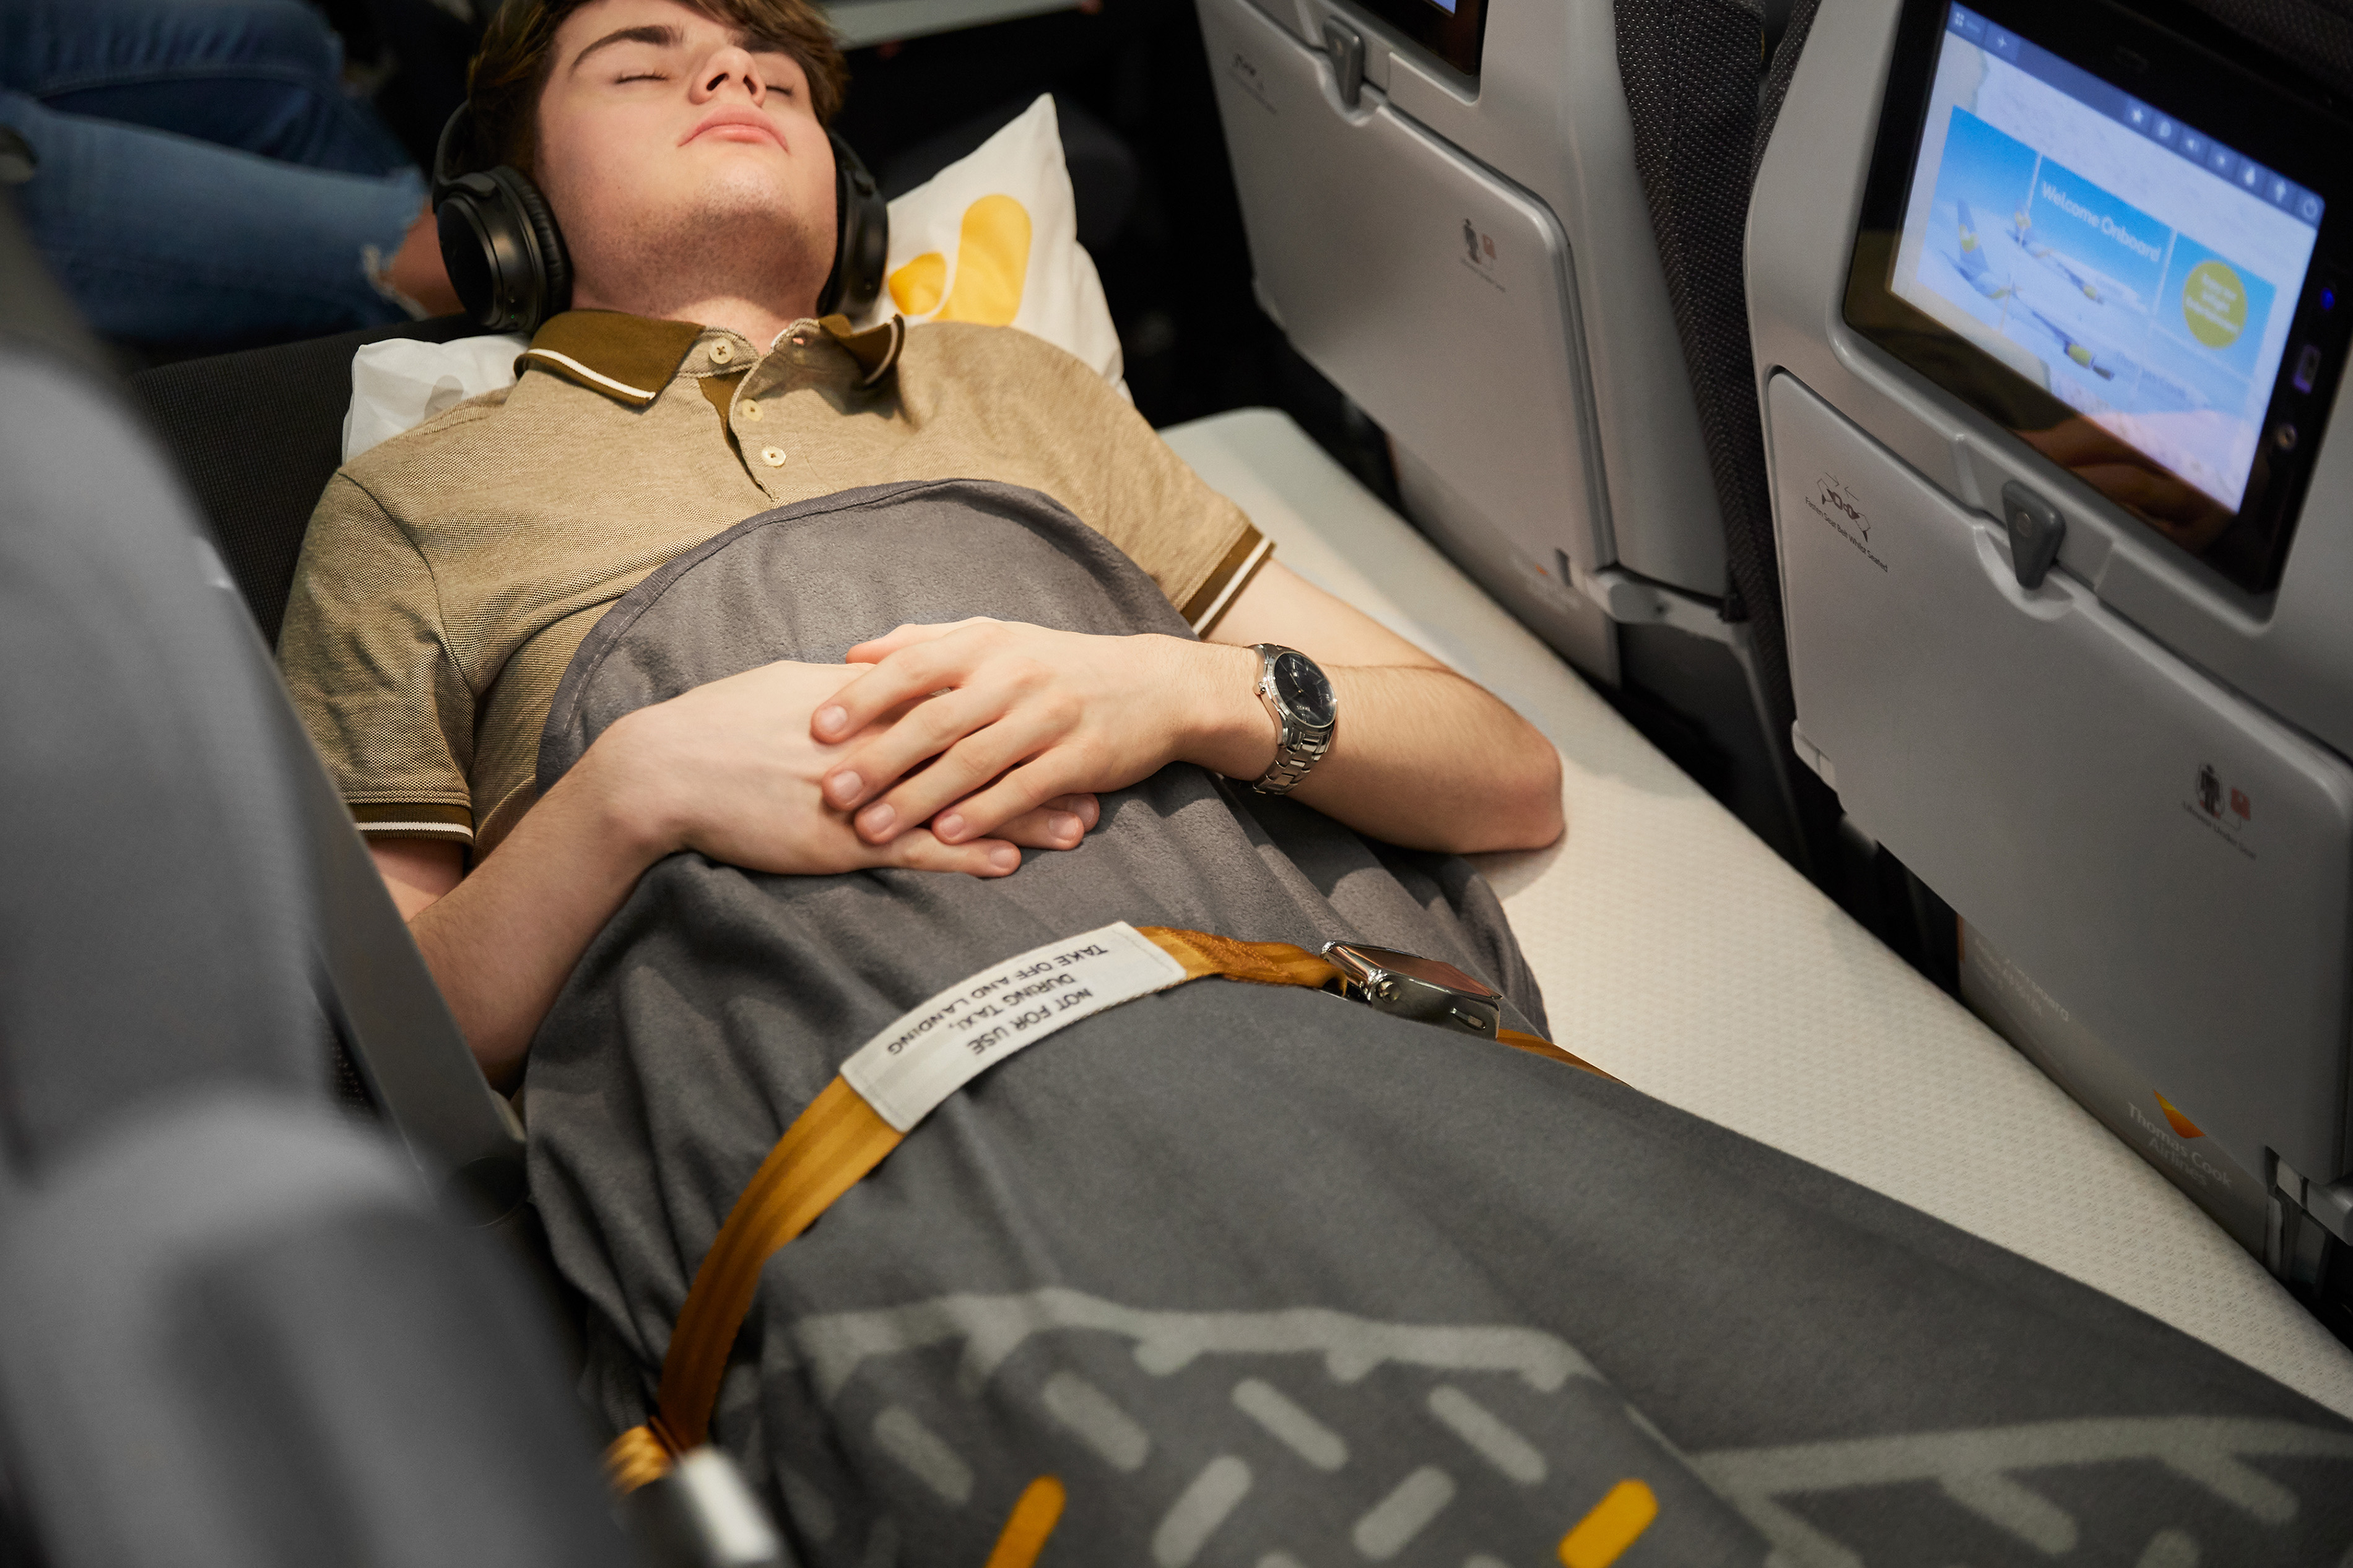 The extension belt enables the passenger to continue lying down when the fasten seatbelt signal is given